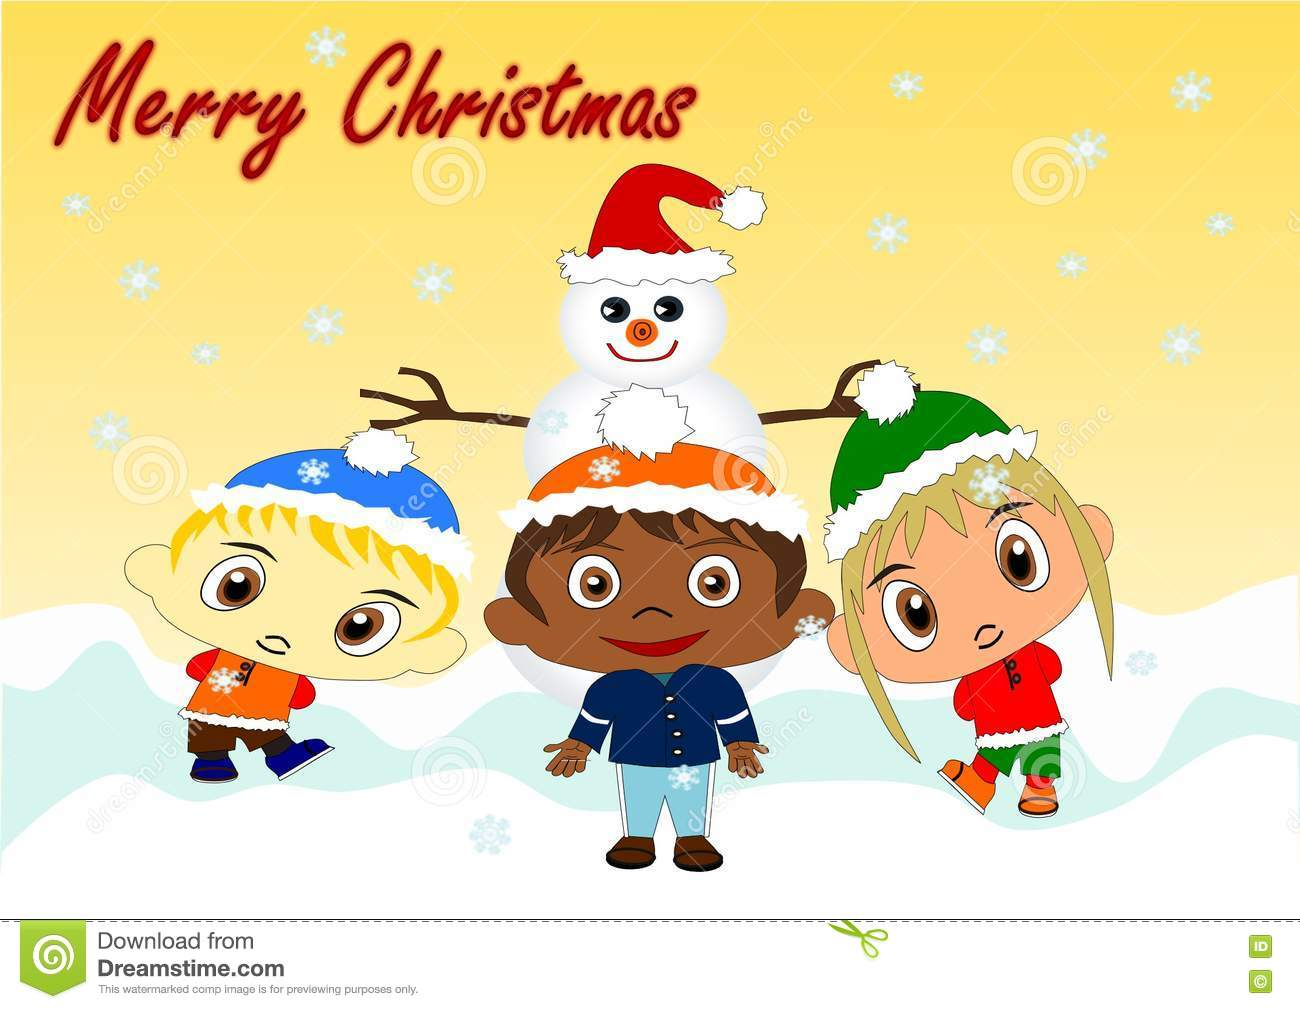 Merry Christmas stock illustration. Illustration of merry - 76647603